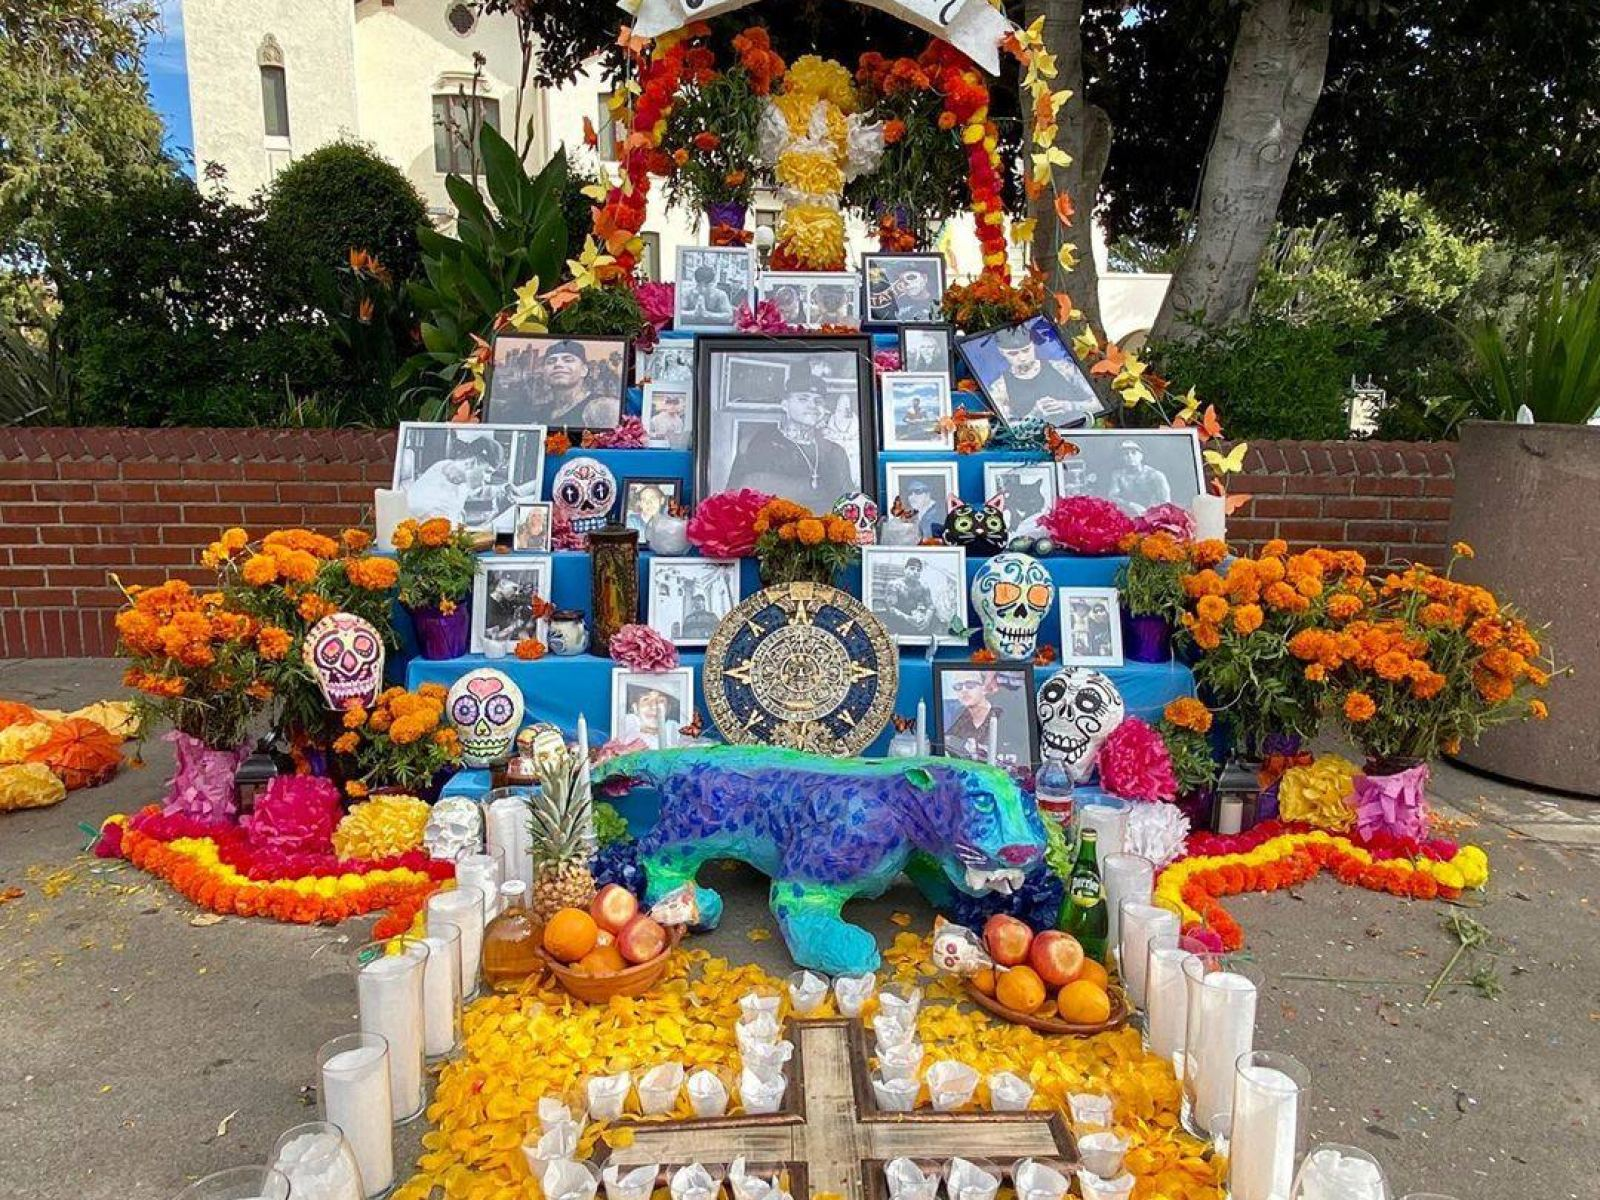 Main image for event titled Día de los Muertos Festival at Olvera Street (OPENING DAY)